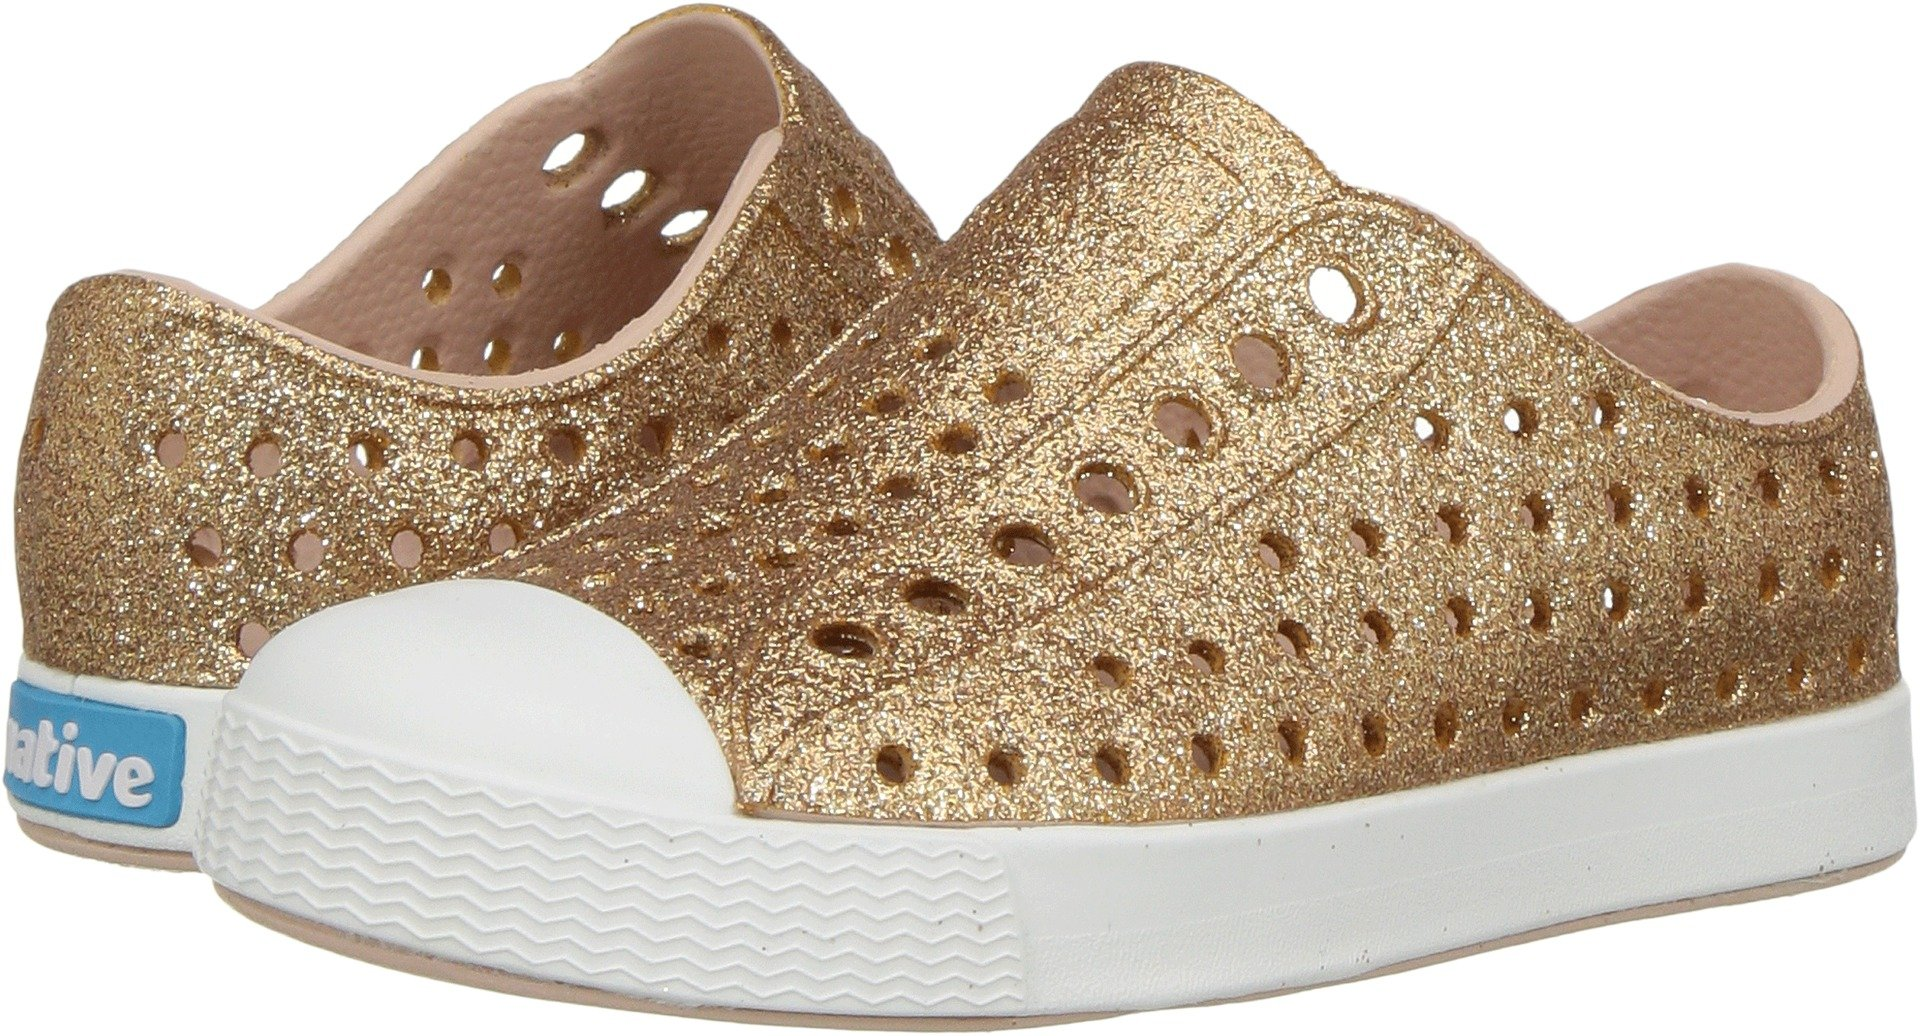 Native Kids Shoes Baby Girl's Jefferson Bling Glitter (Toddler/Little Kid) Rose Gold Bling 4 M US Toddler